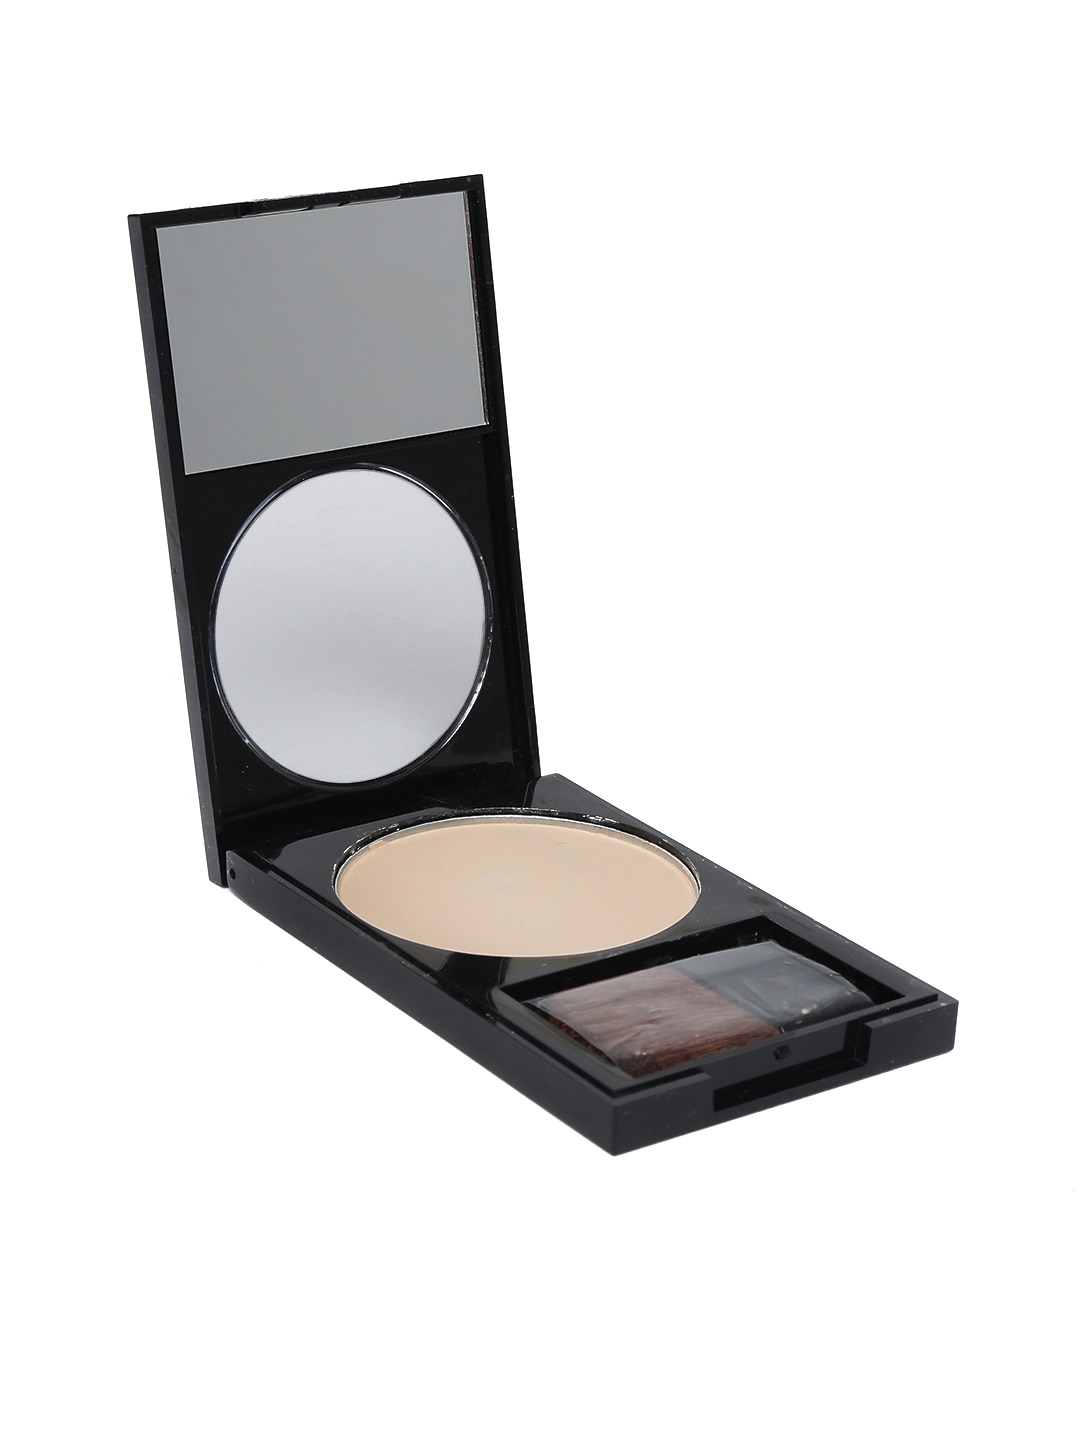 Revlon Photoready Powder Compact 010 with SPF 14 image